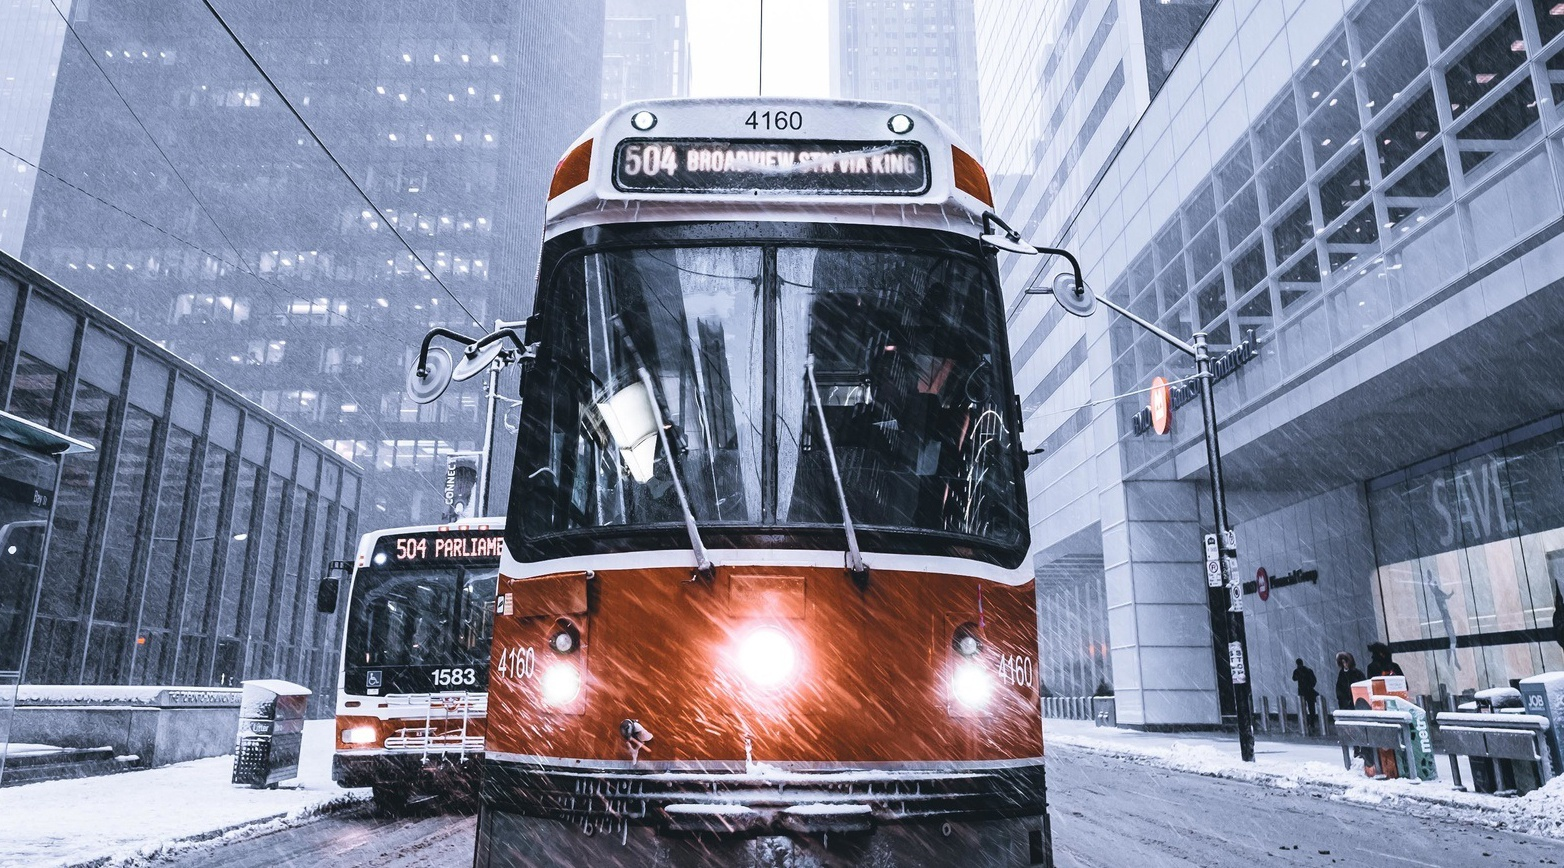 Don't believe the hype: Toronto is going to have an average winter this year